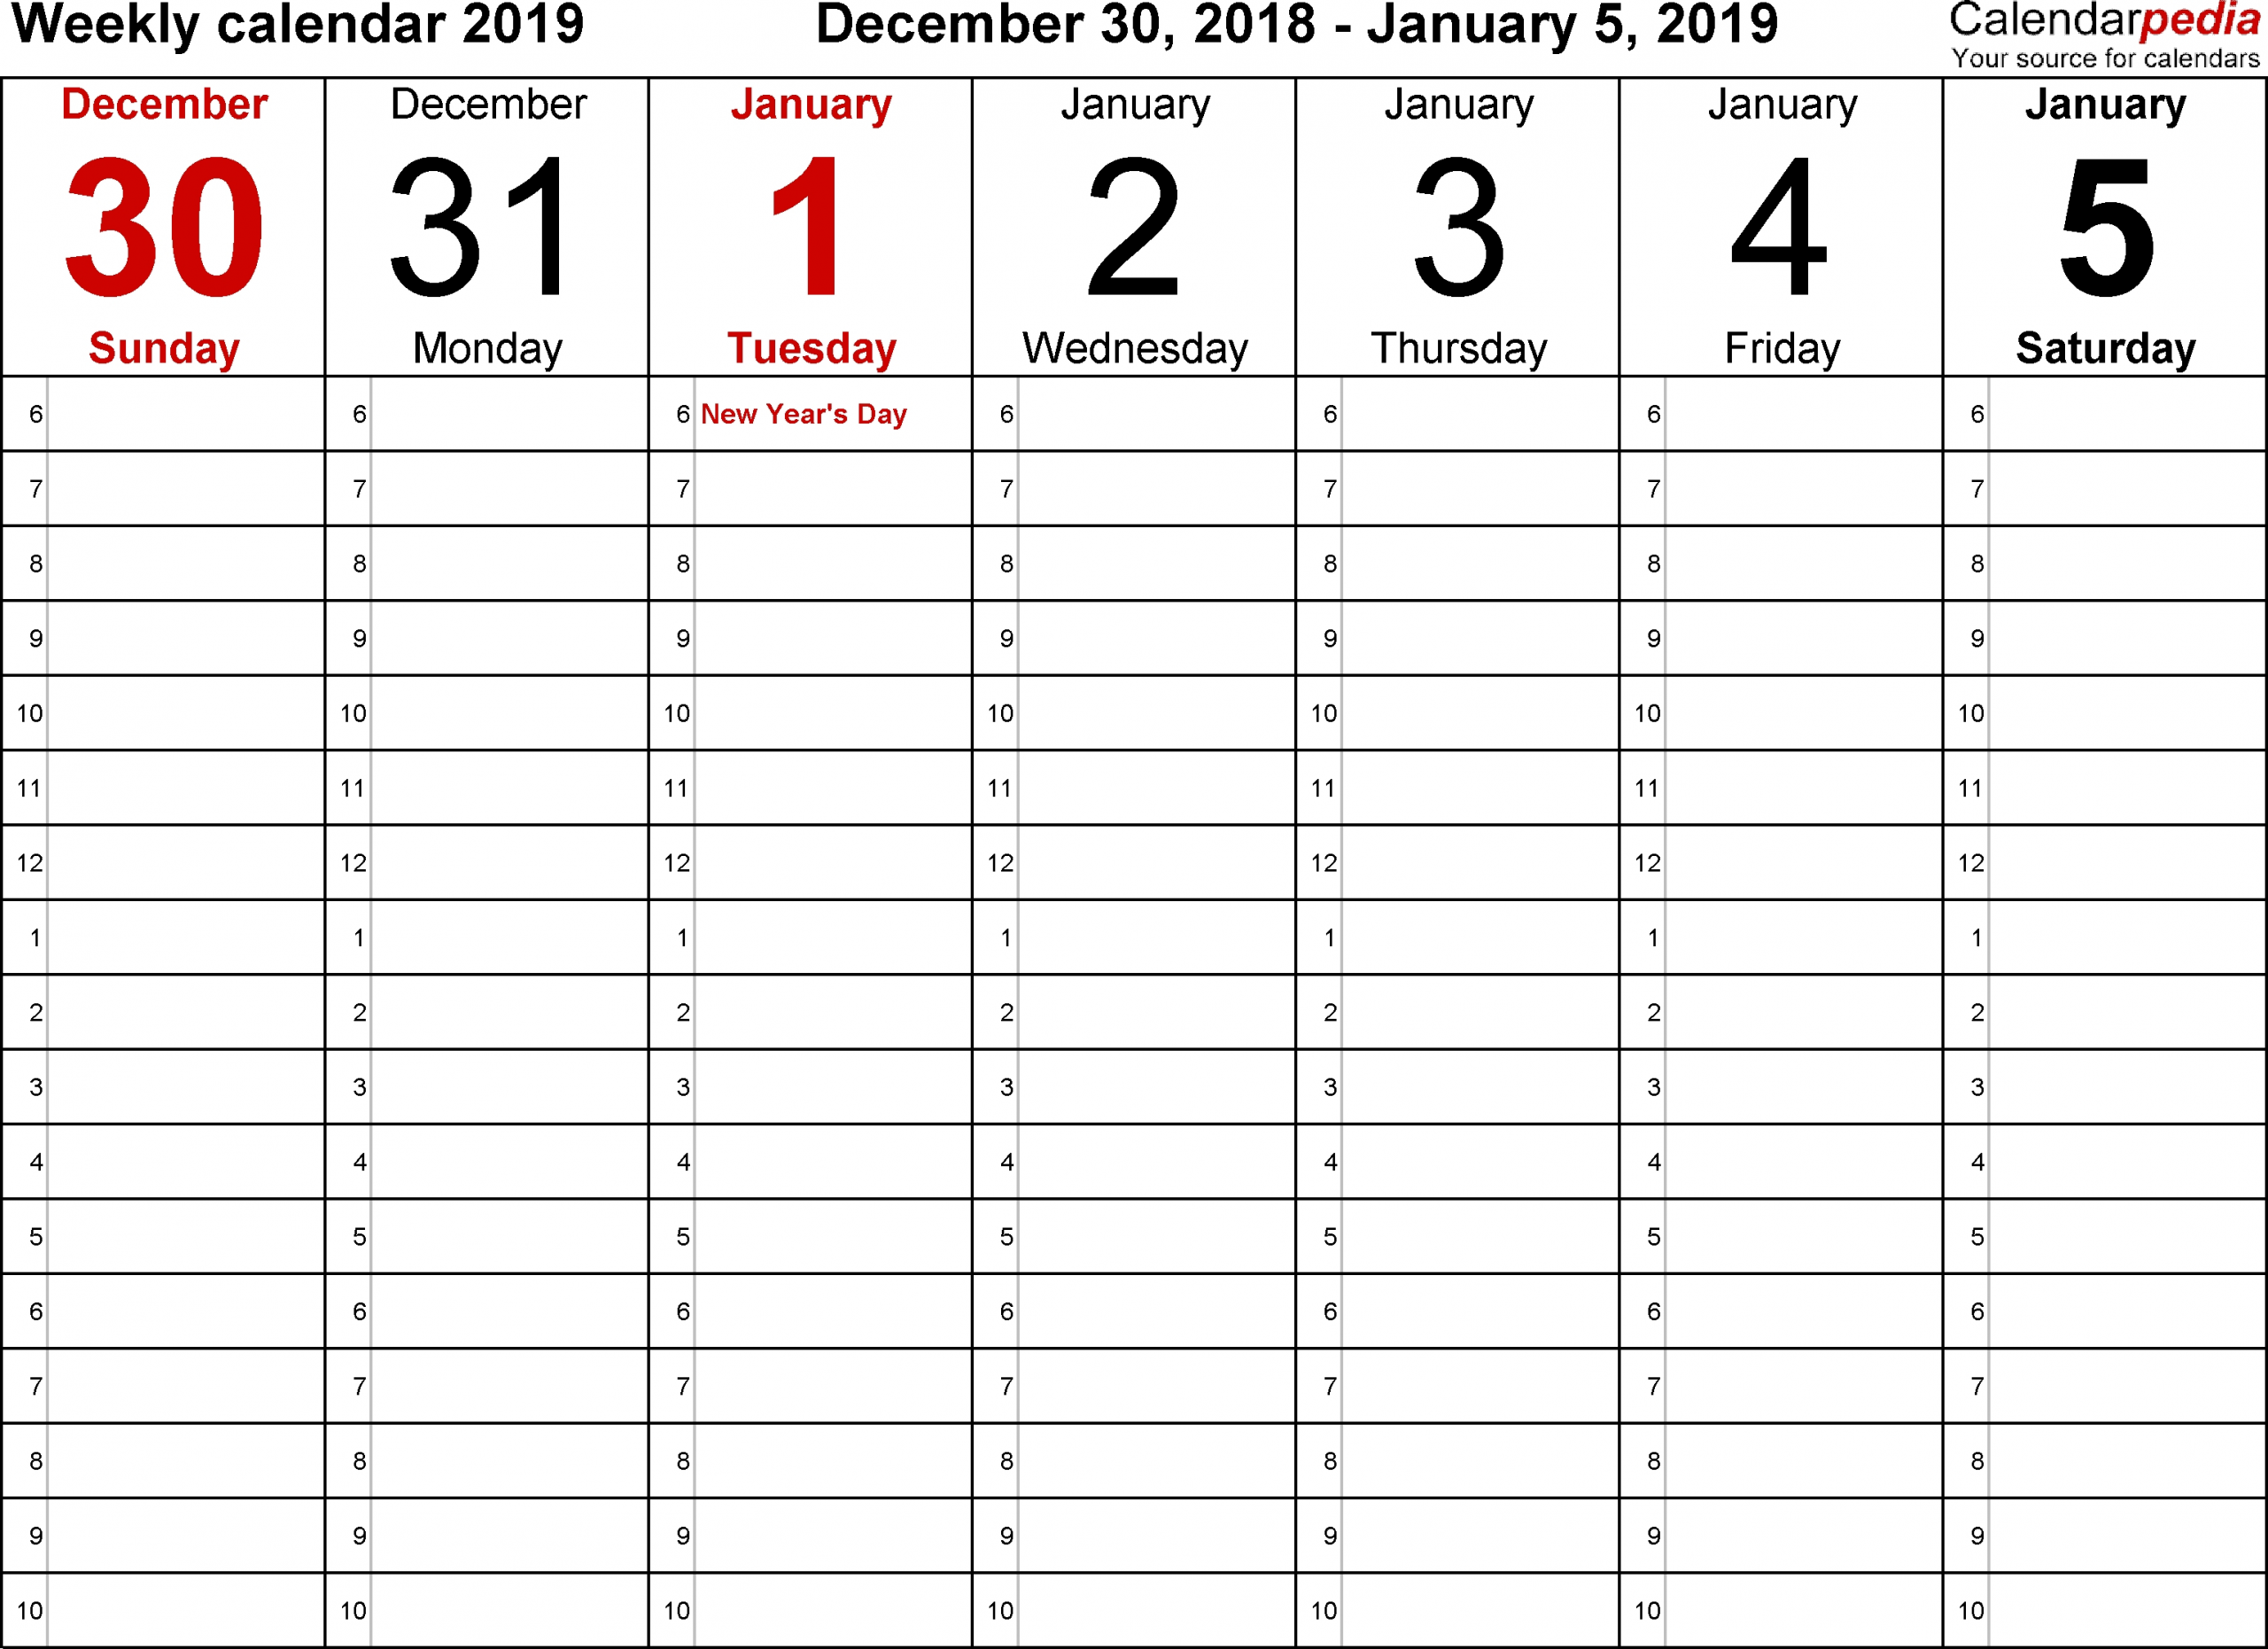 Blank Calendars To Print With Time Slots – Calendar Free Weekly Planner With Time Slots